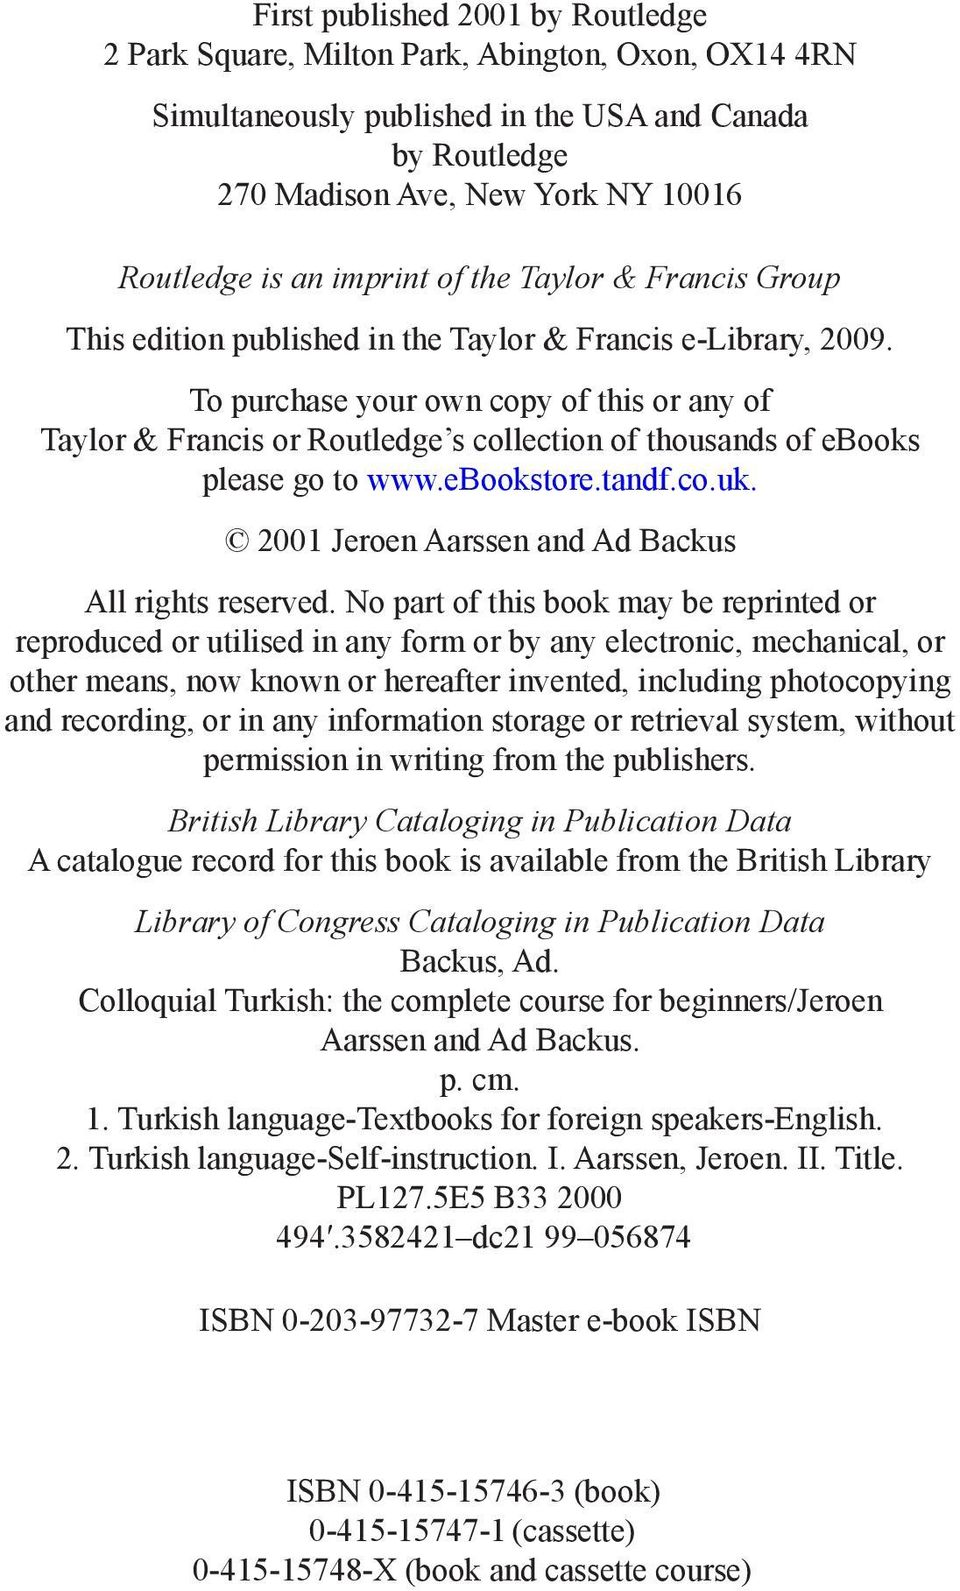 To purchase your own copy of this or any of Taylor & Francis or Routledge s collection of thousands of ebooks please go to www.ebookstore.tandf.co.uk.